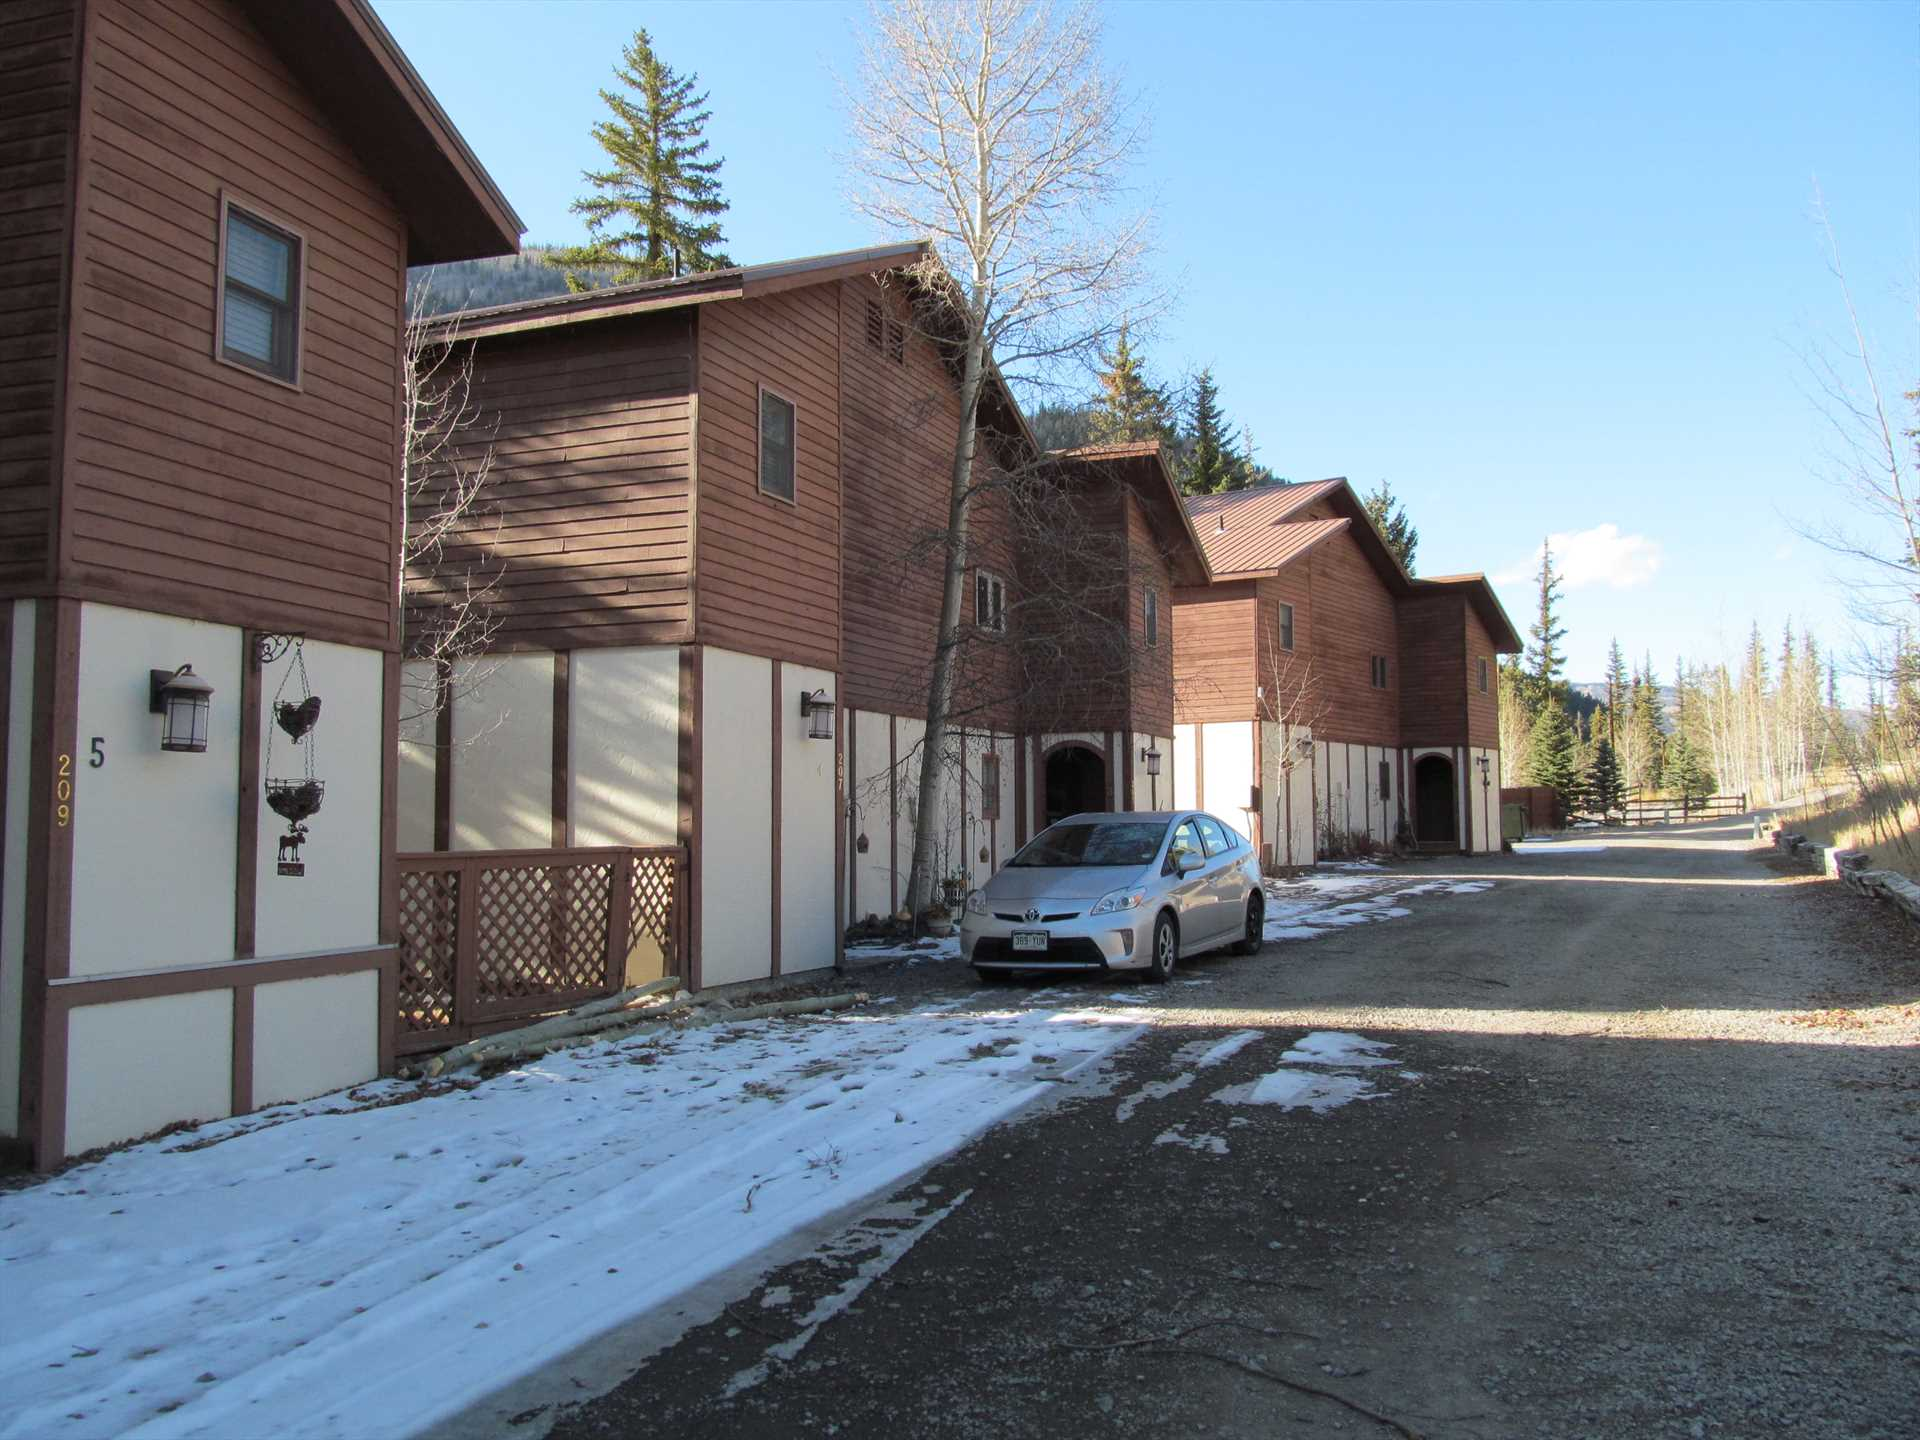 Parking for two cars per townhome.  Trailers can be parked u